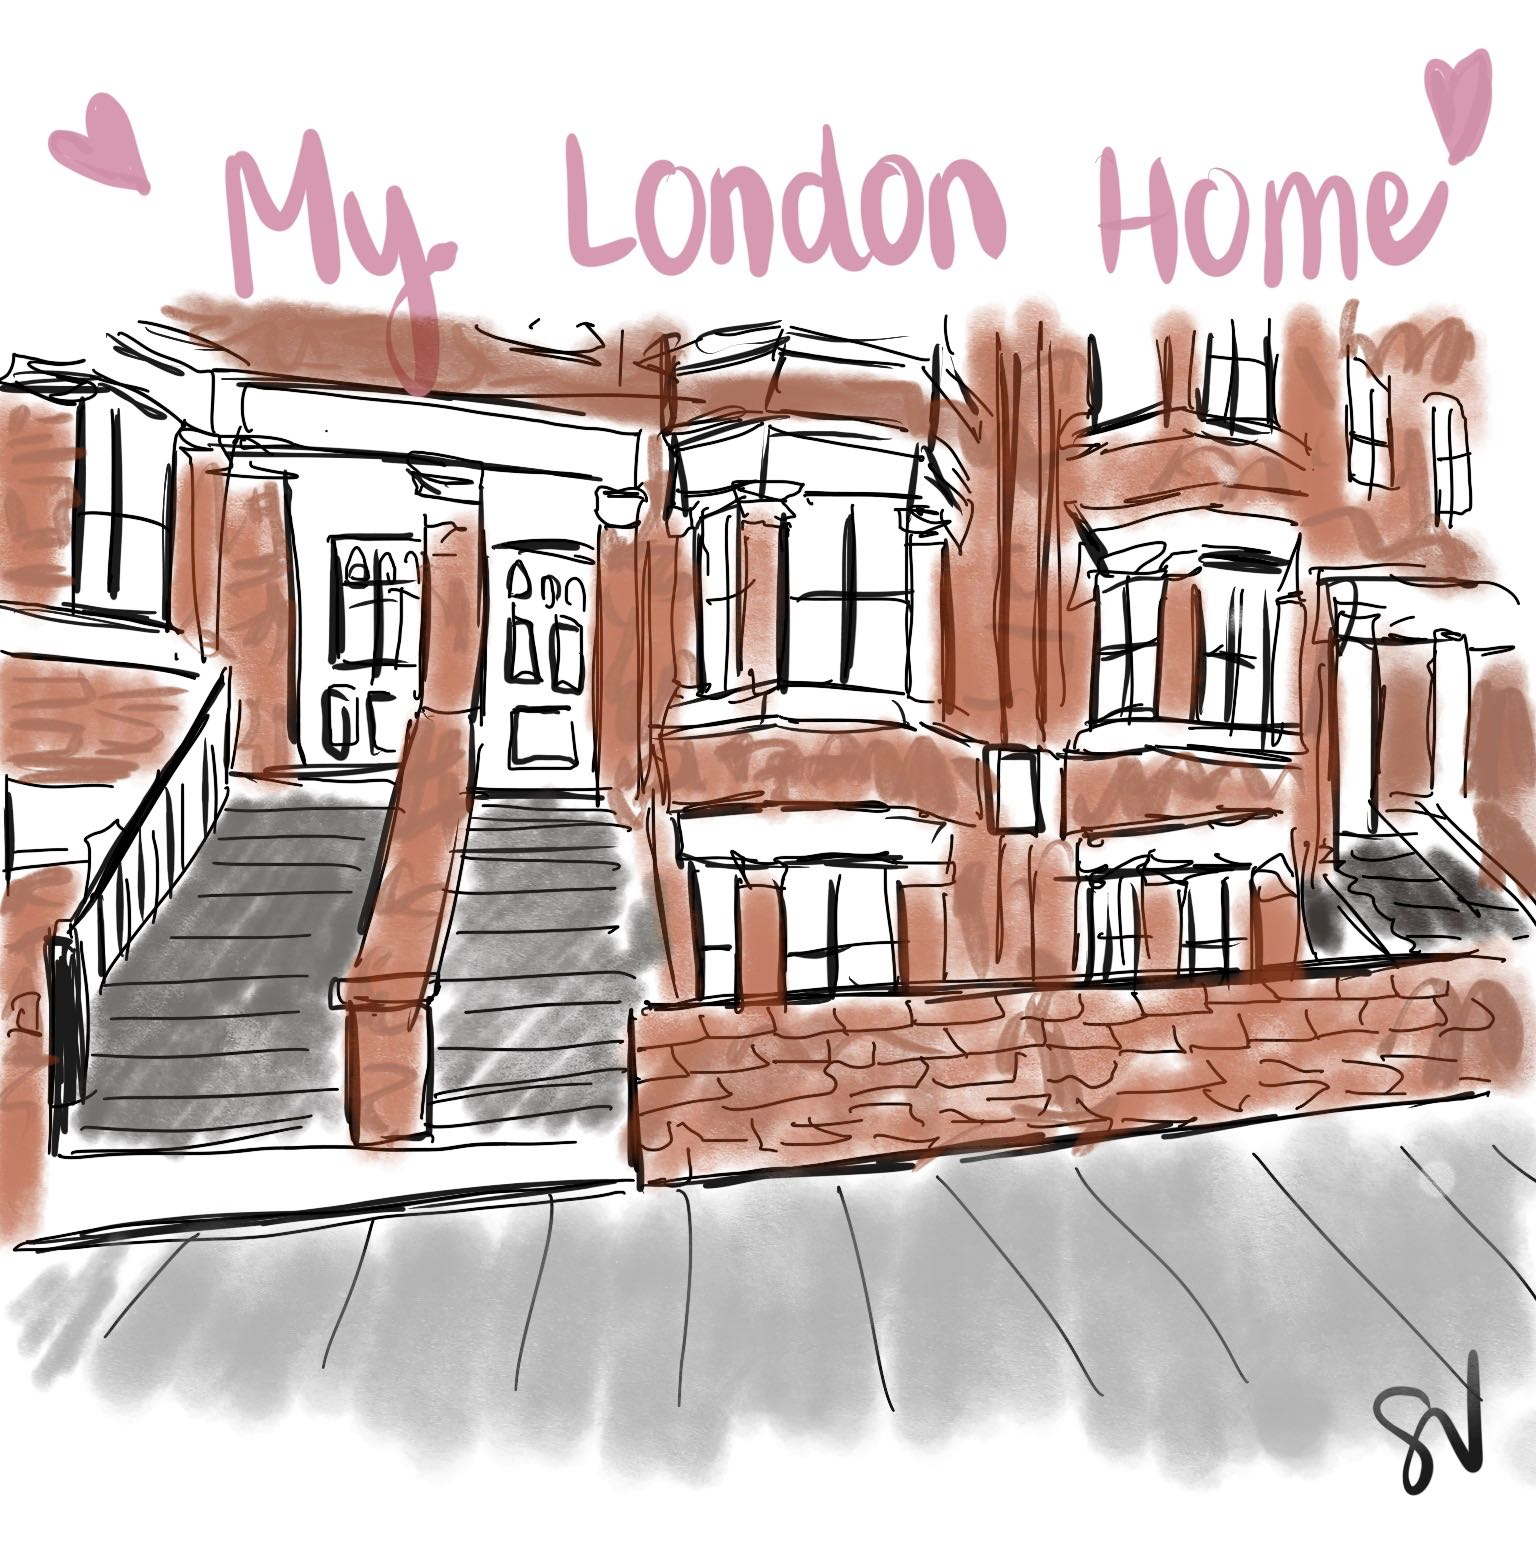 'My London Home' by me.